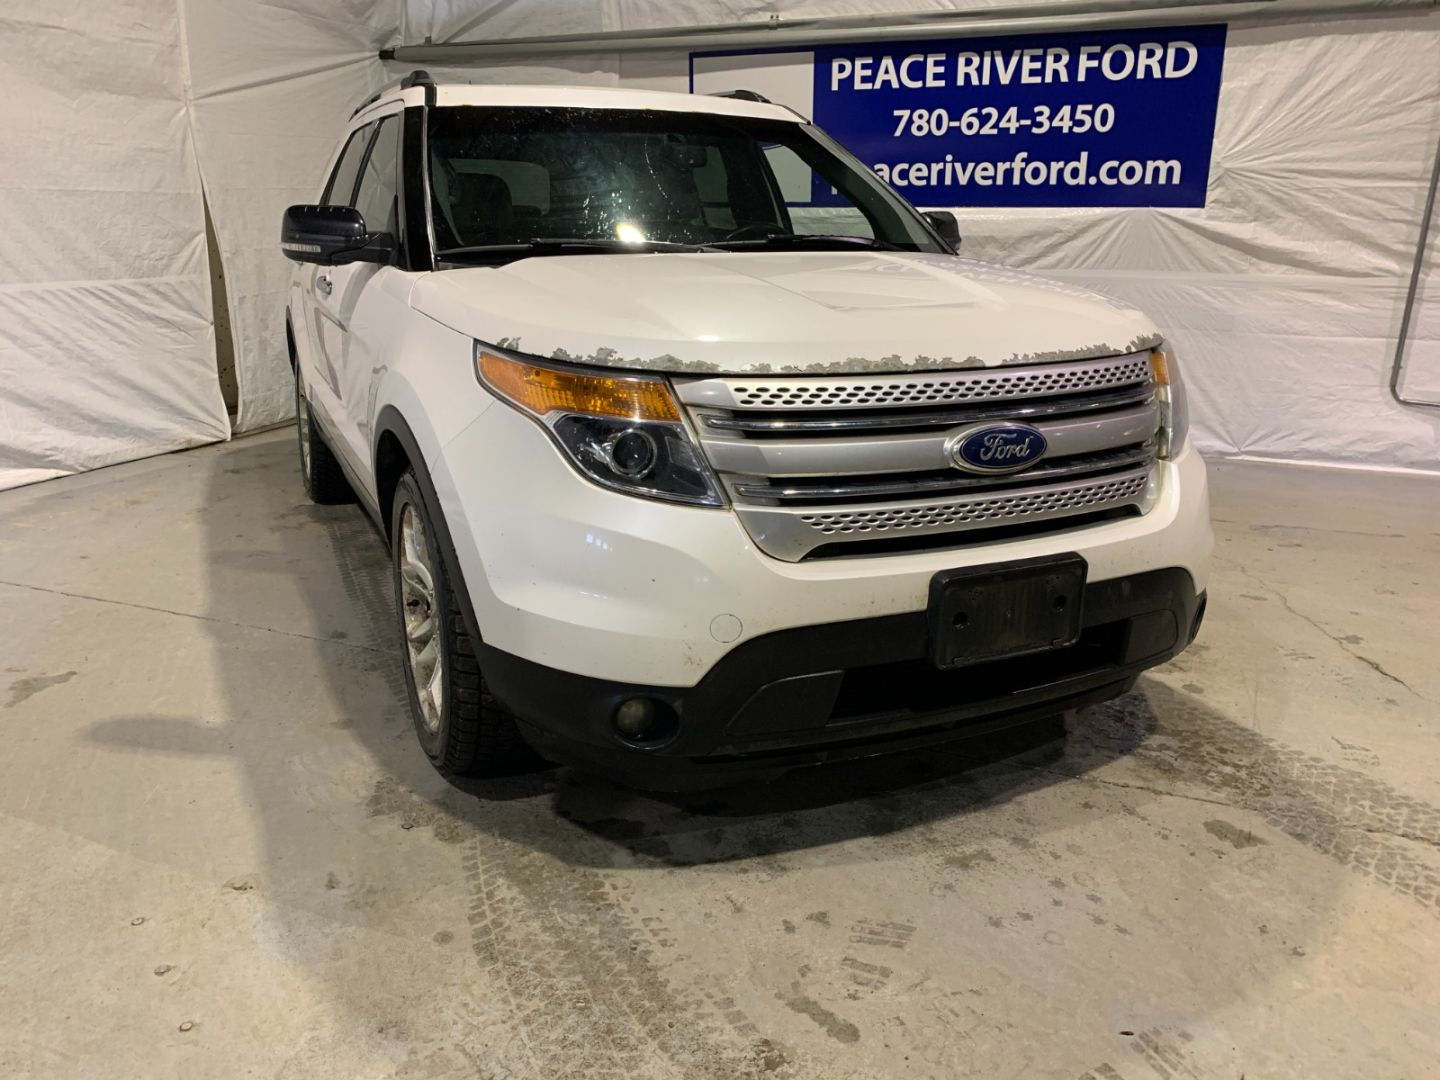 2012 Ford Explorer XLT for sale in Peace River, Alberta